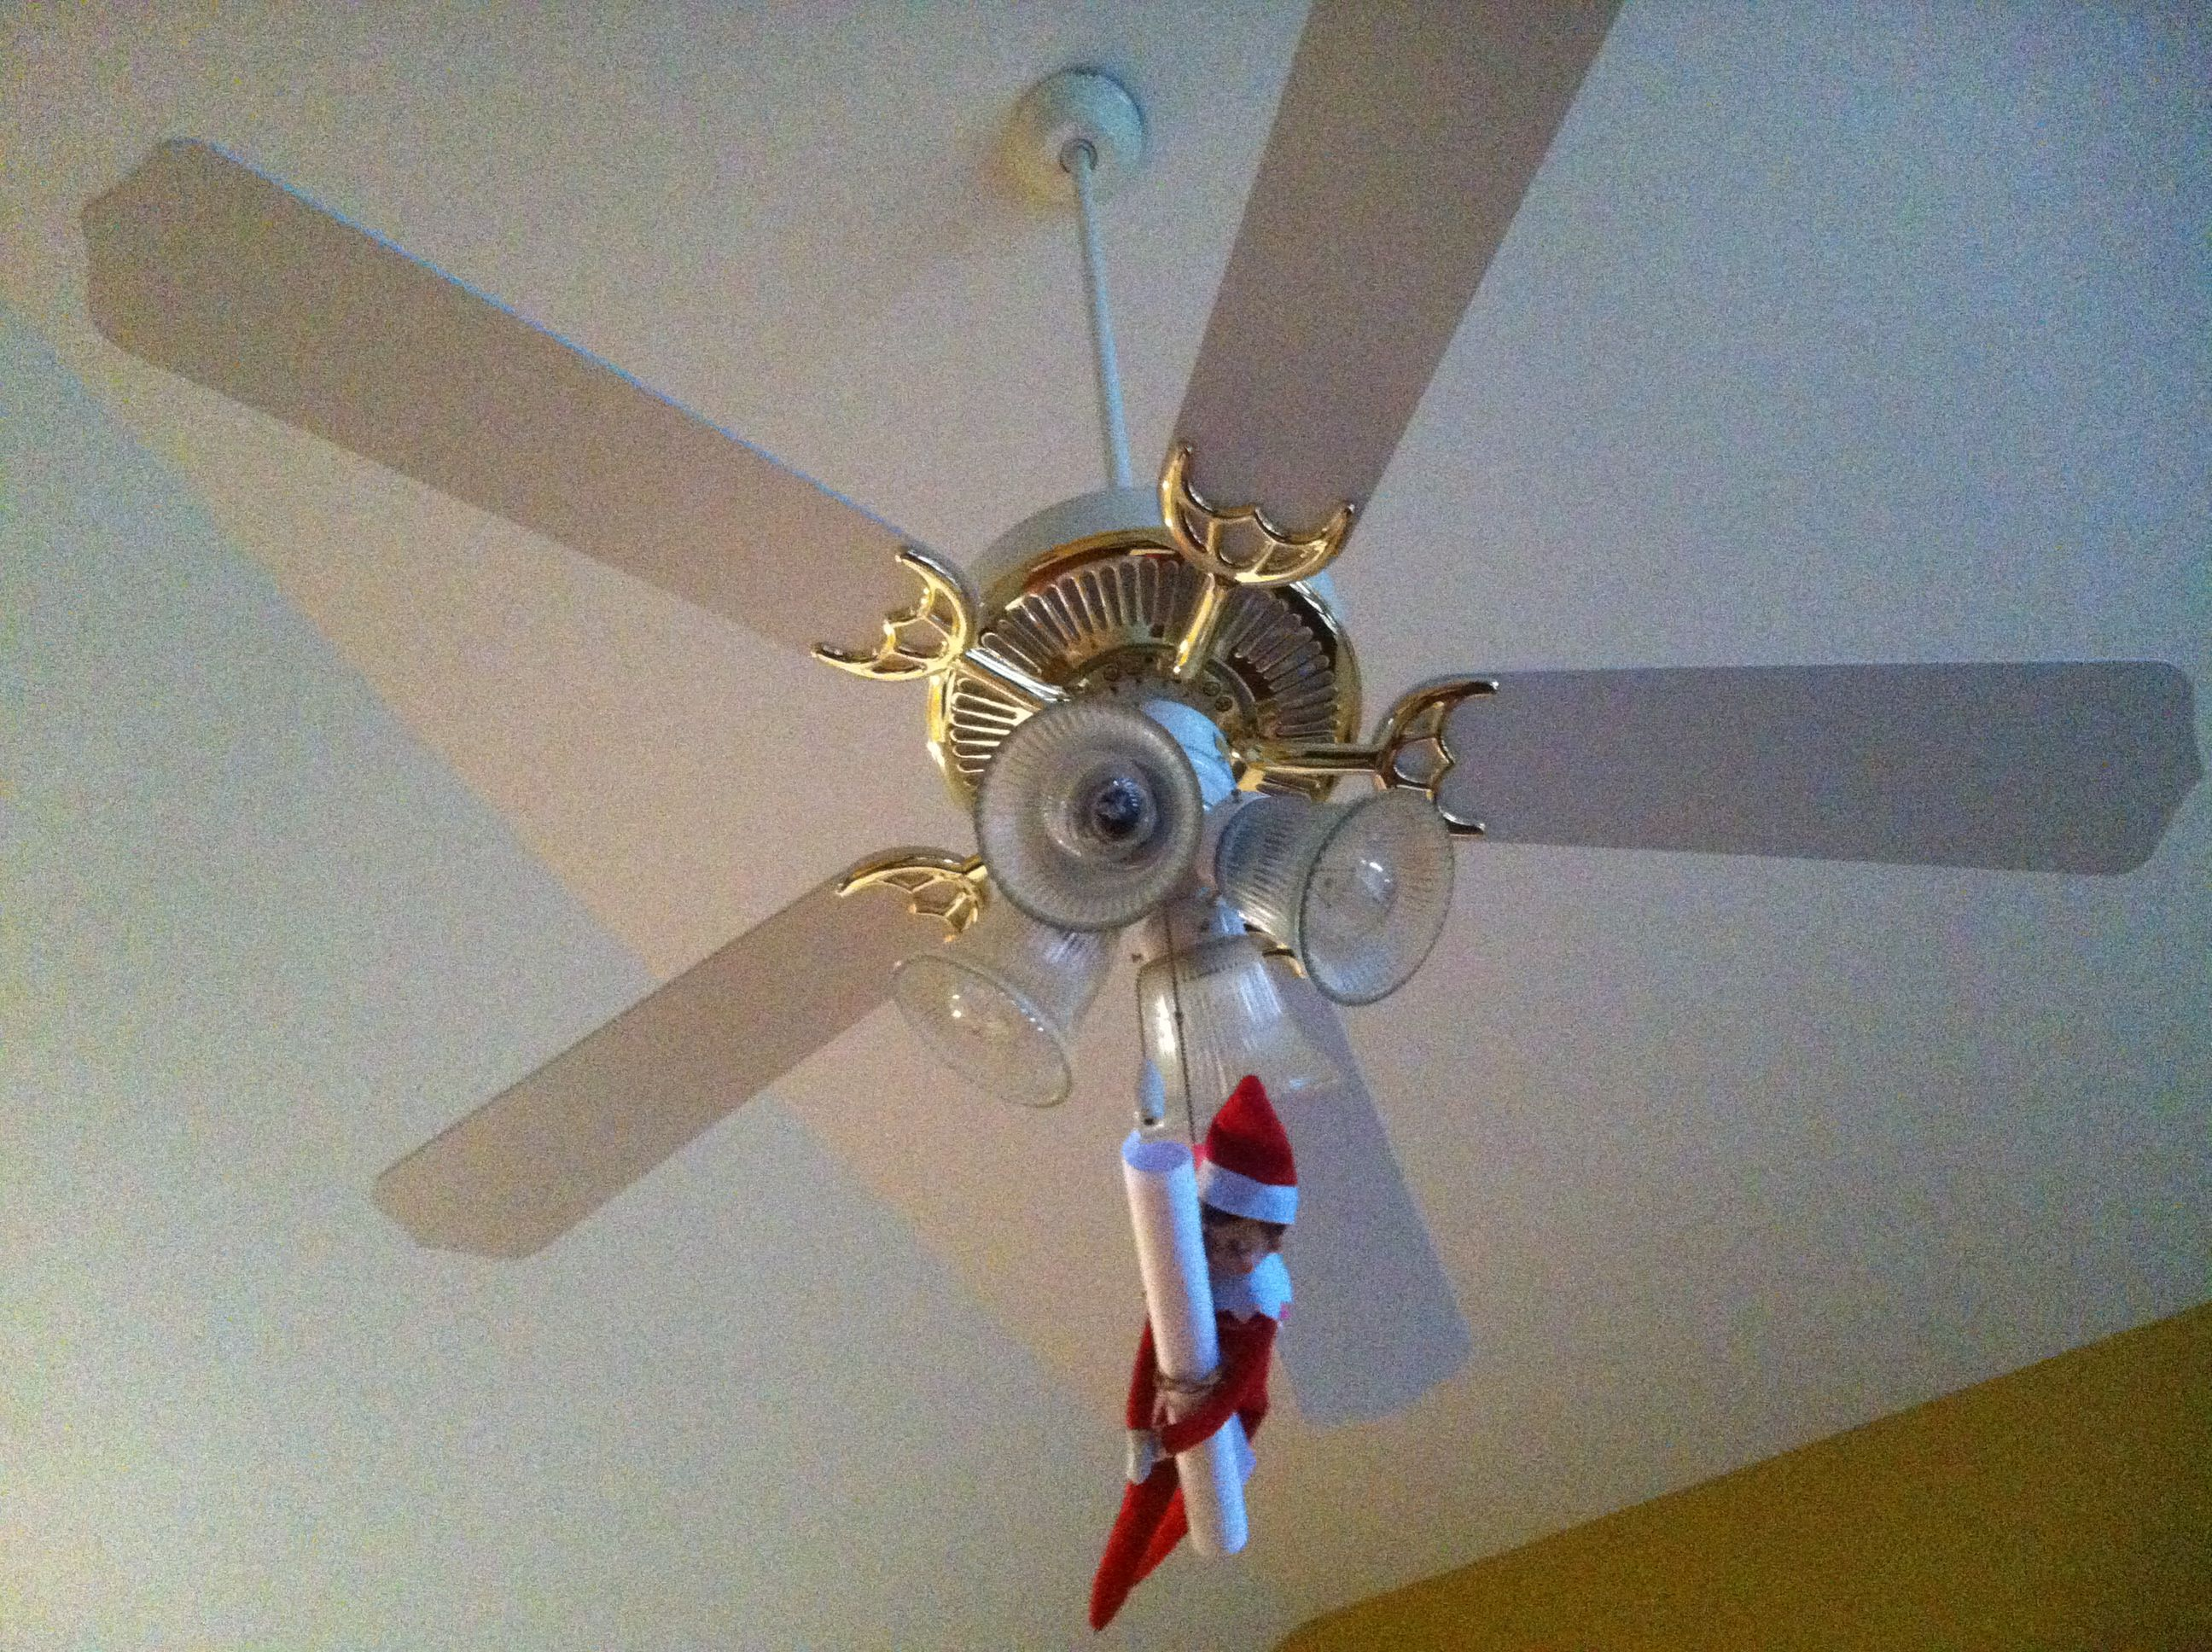 Elfie was hanging from our ceiling fan cord this morning Looks